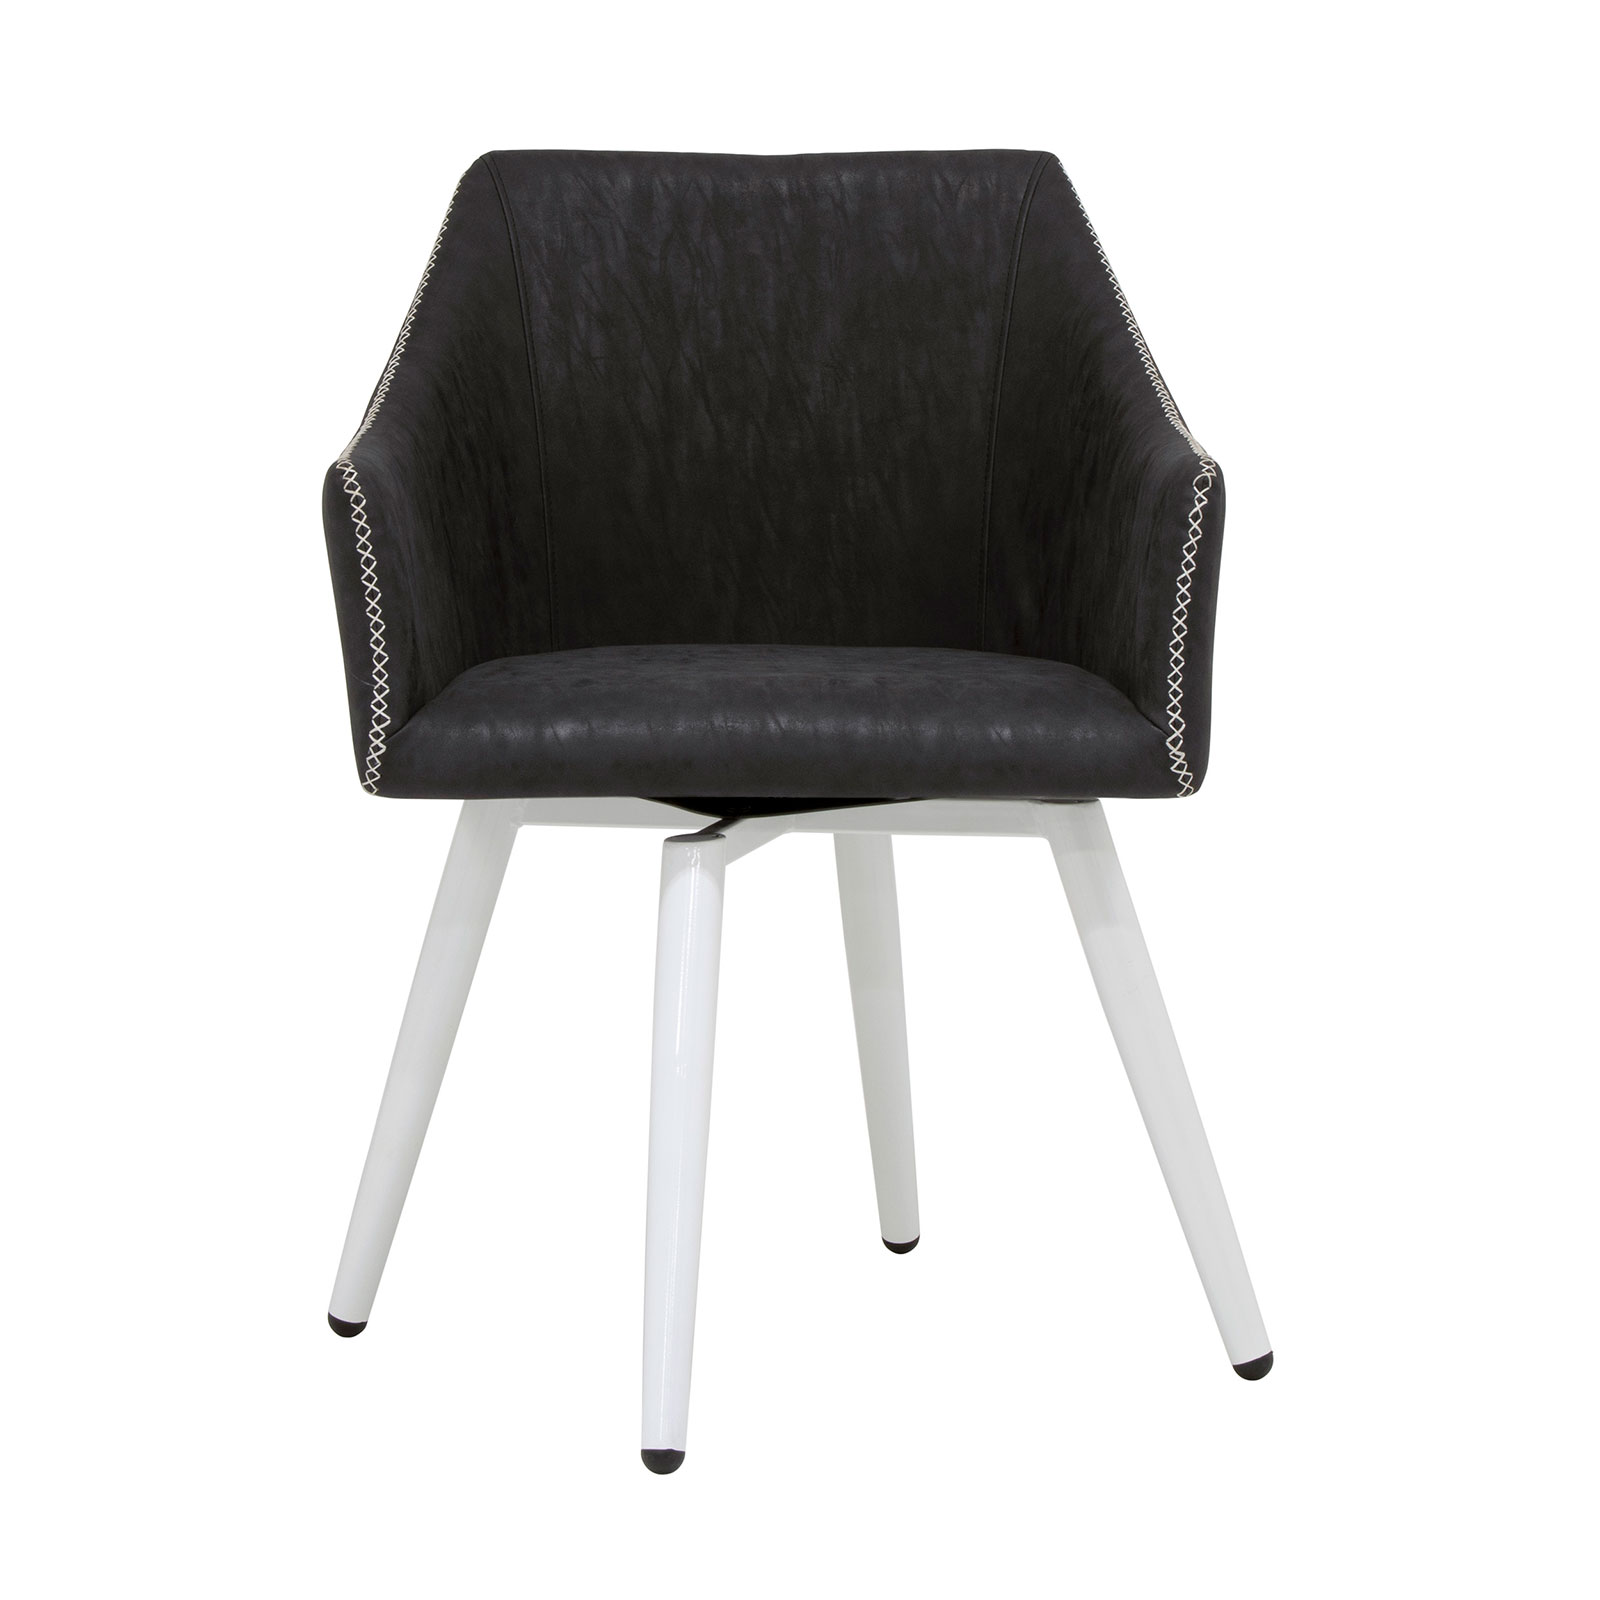 52004-Sydney-Office-Chair-front